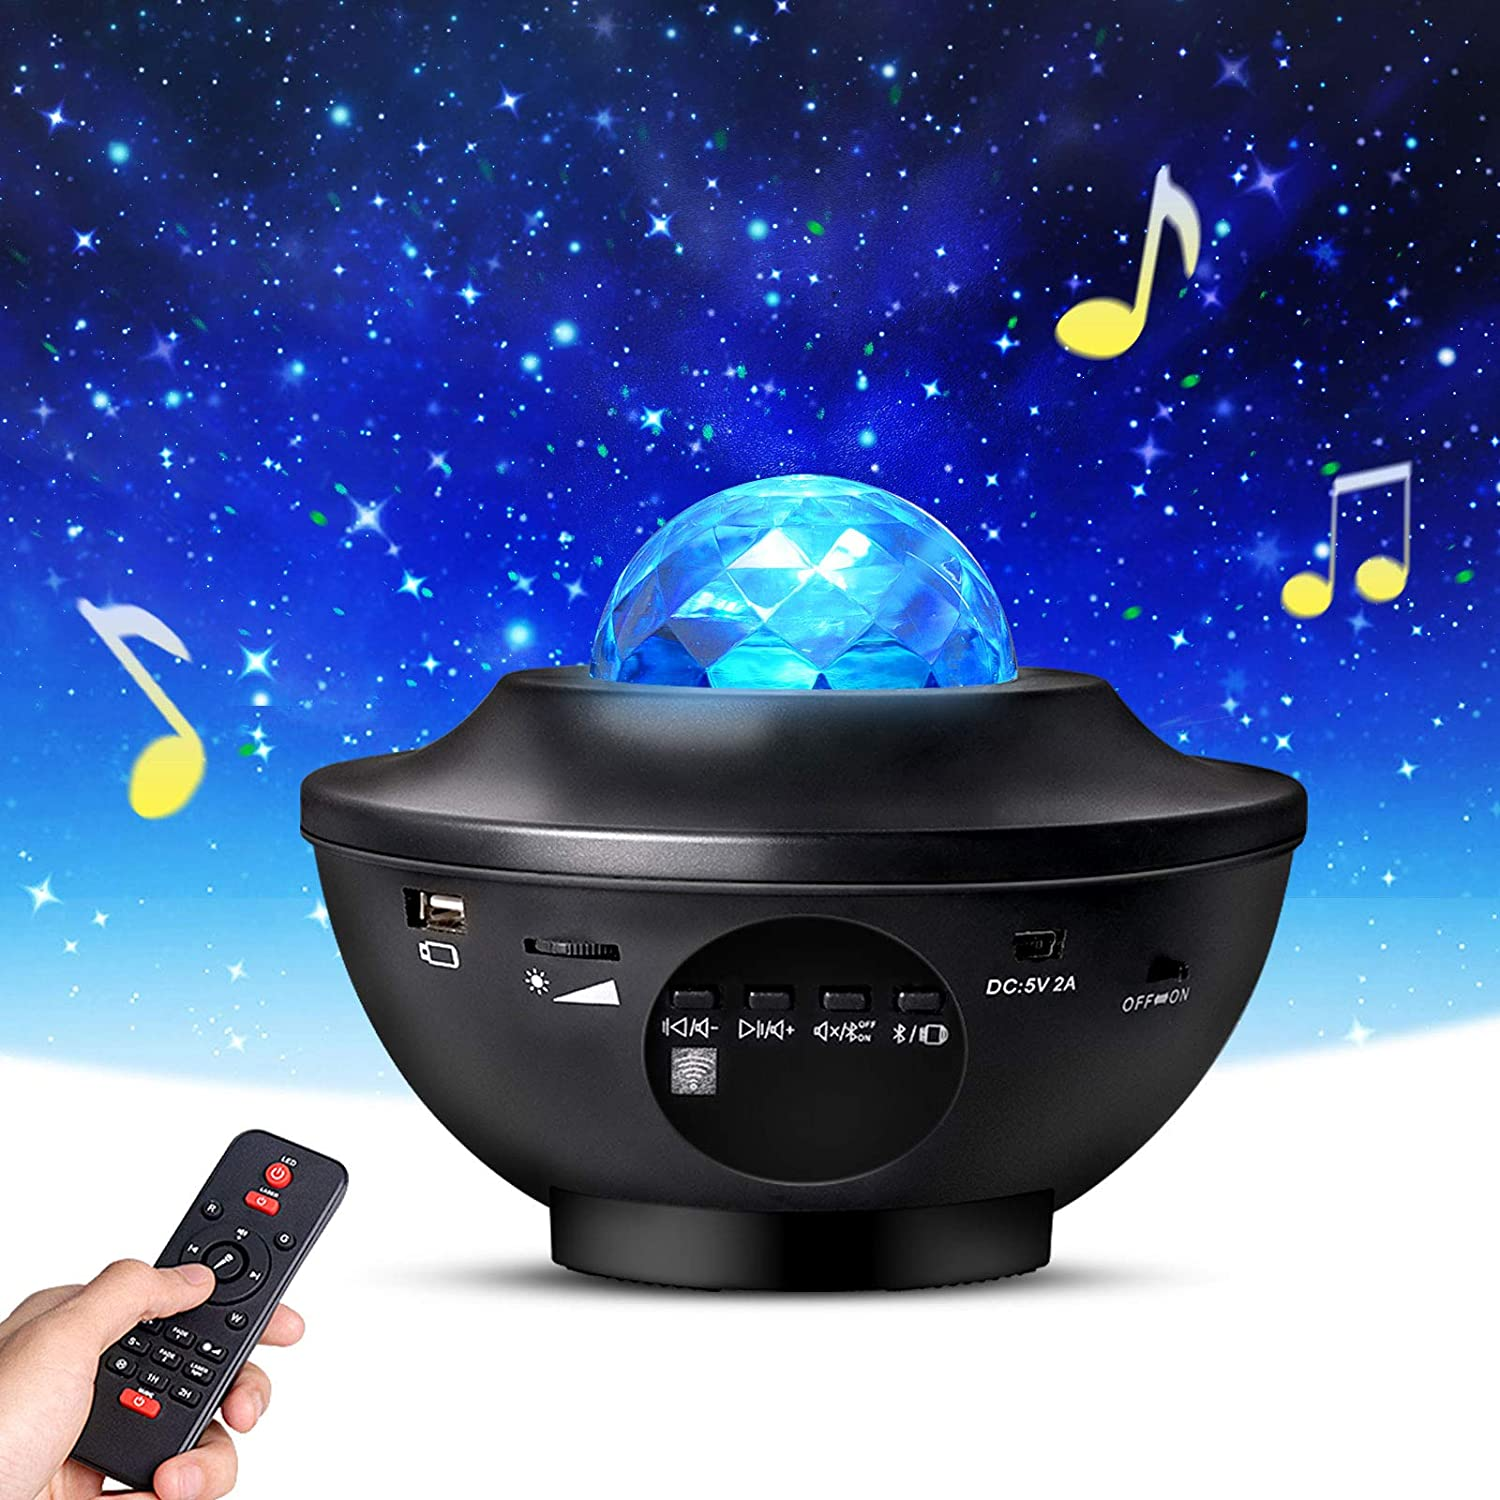 4 in 1 LED Sky Projector with 13 Lighting/Effects Voice/&Touch Control Adjustable Base Star Projector Unique Sky Star Lite Light,/Galaxy Night Light Projector for Baby Adults Home 4H Auto-Off